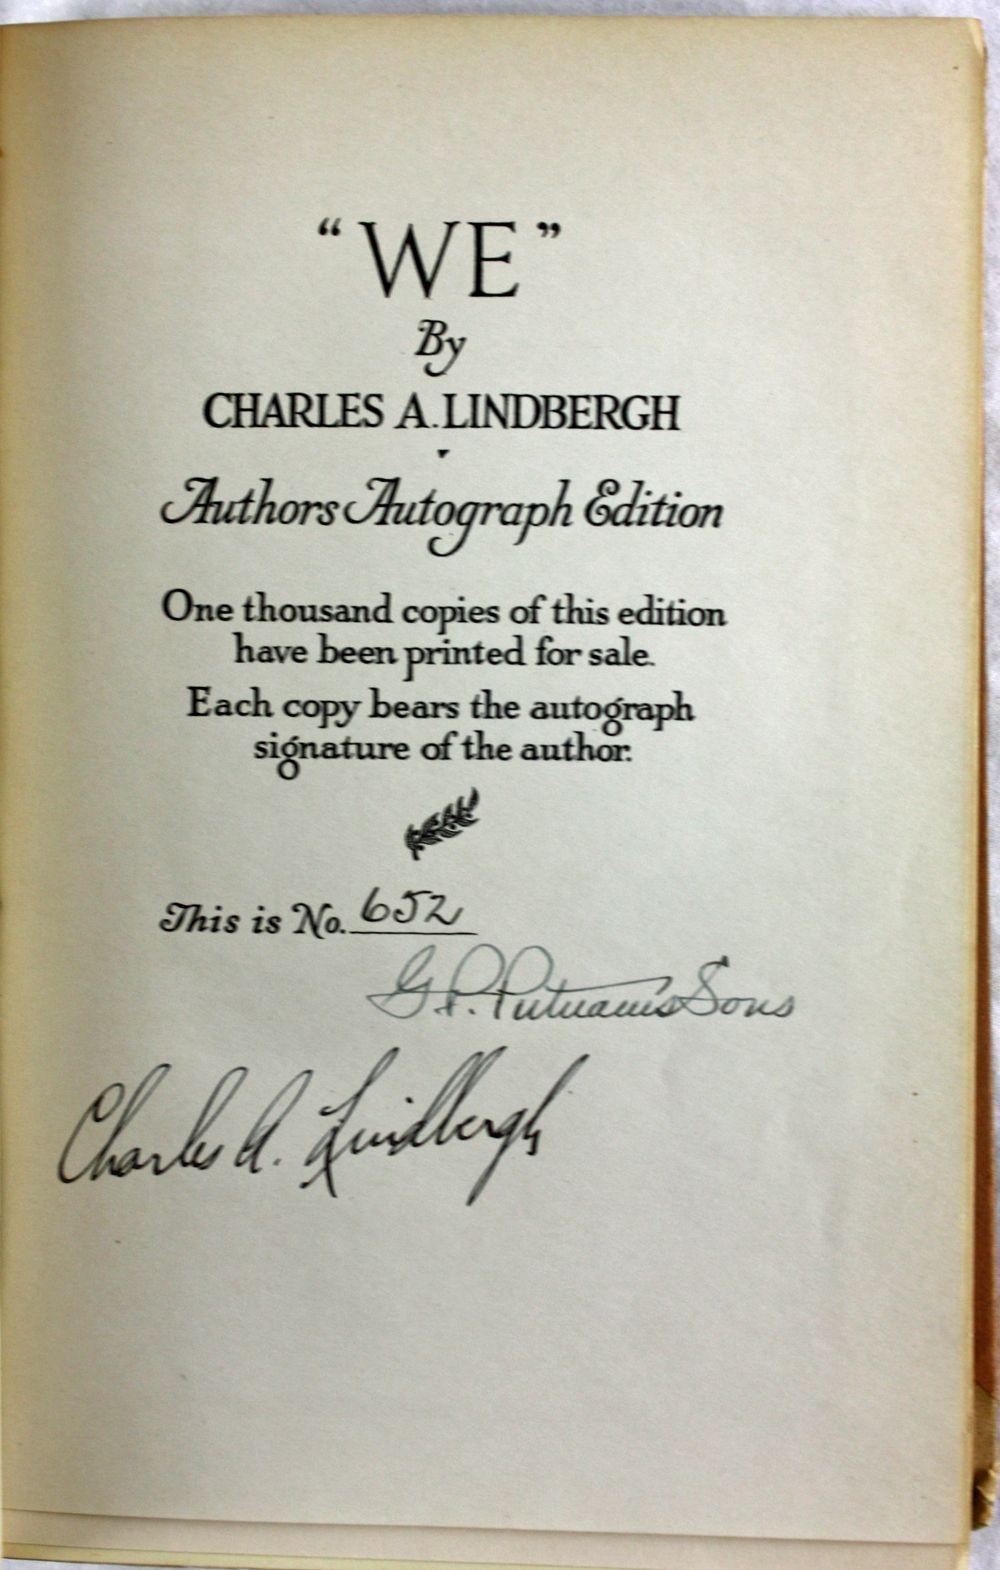 covers letters examples lot detail charles lindbergh signed limited edition 21219